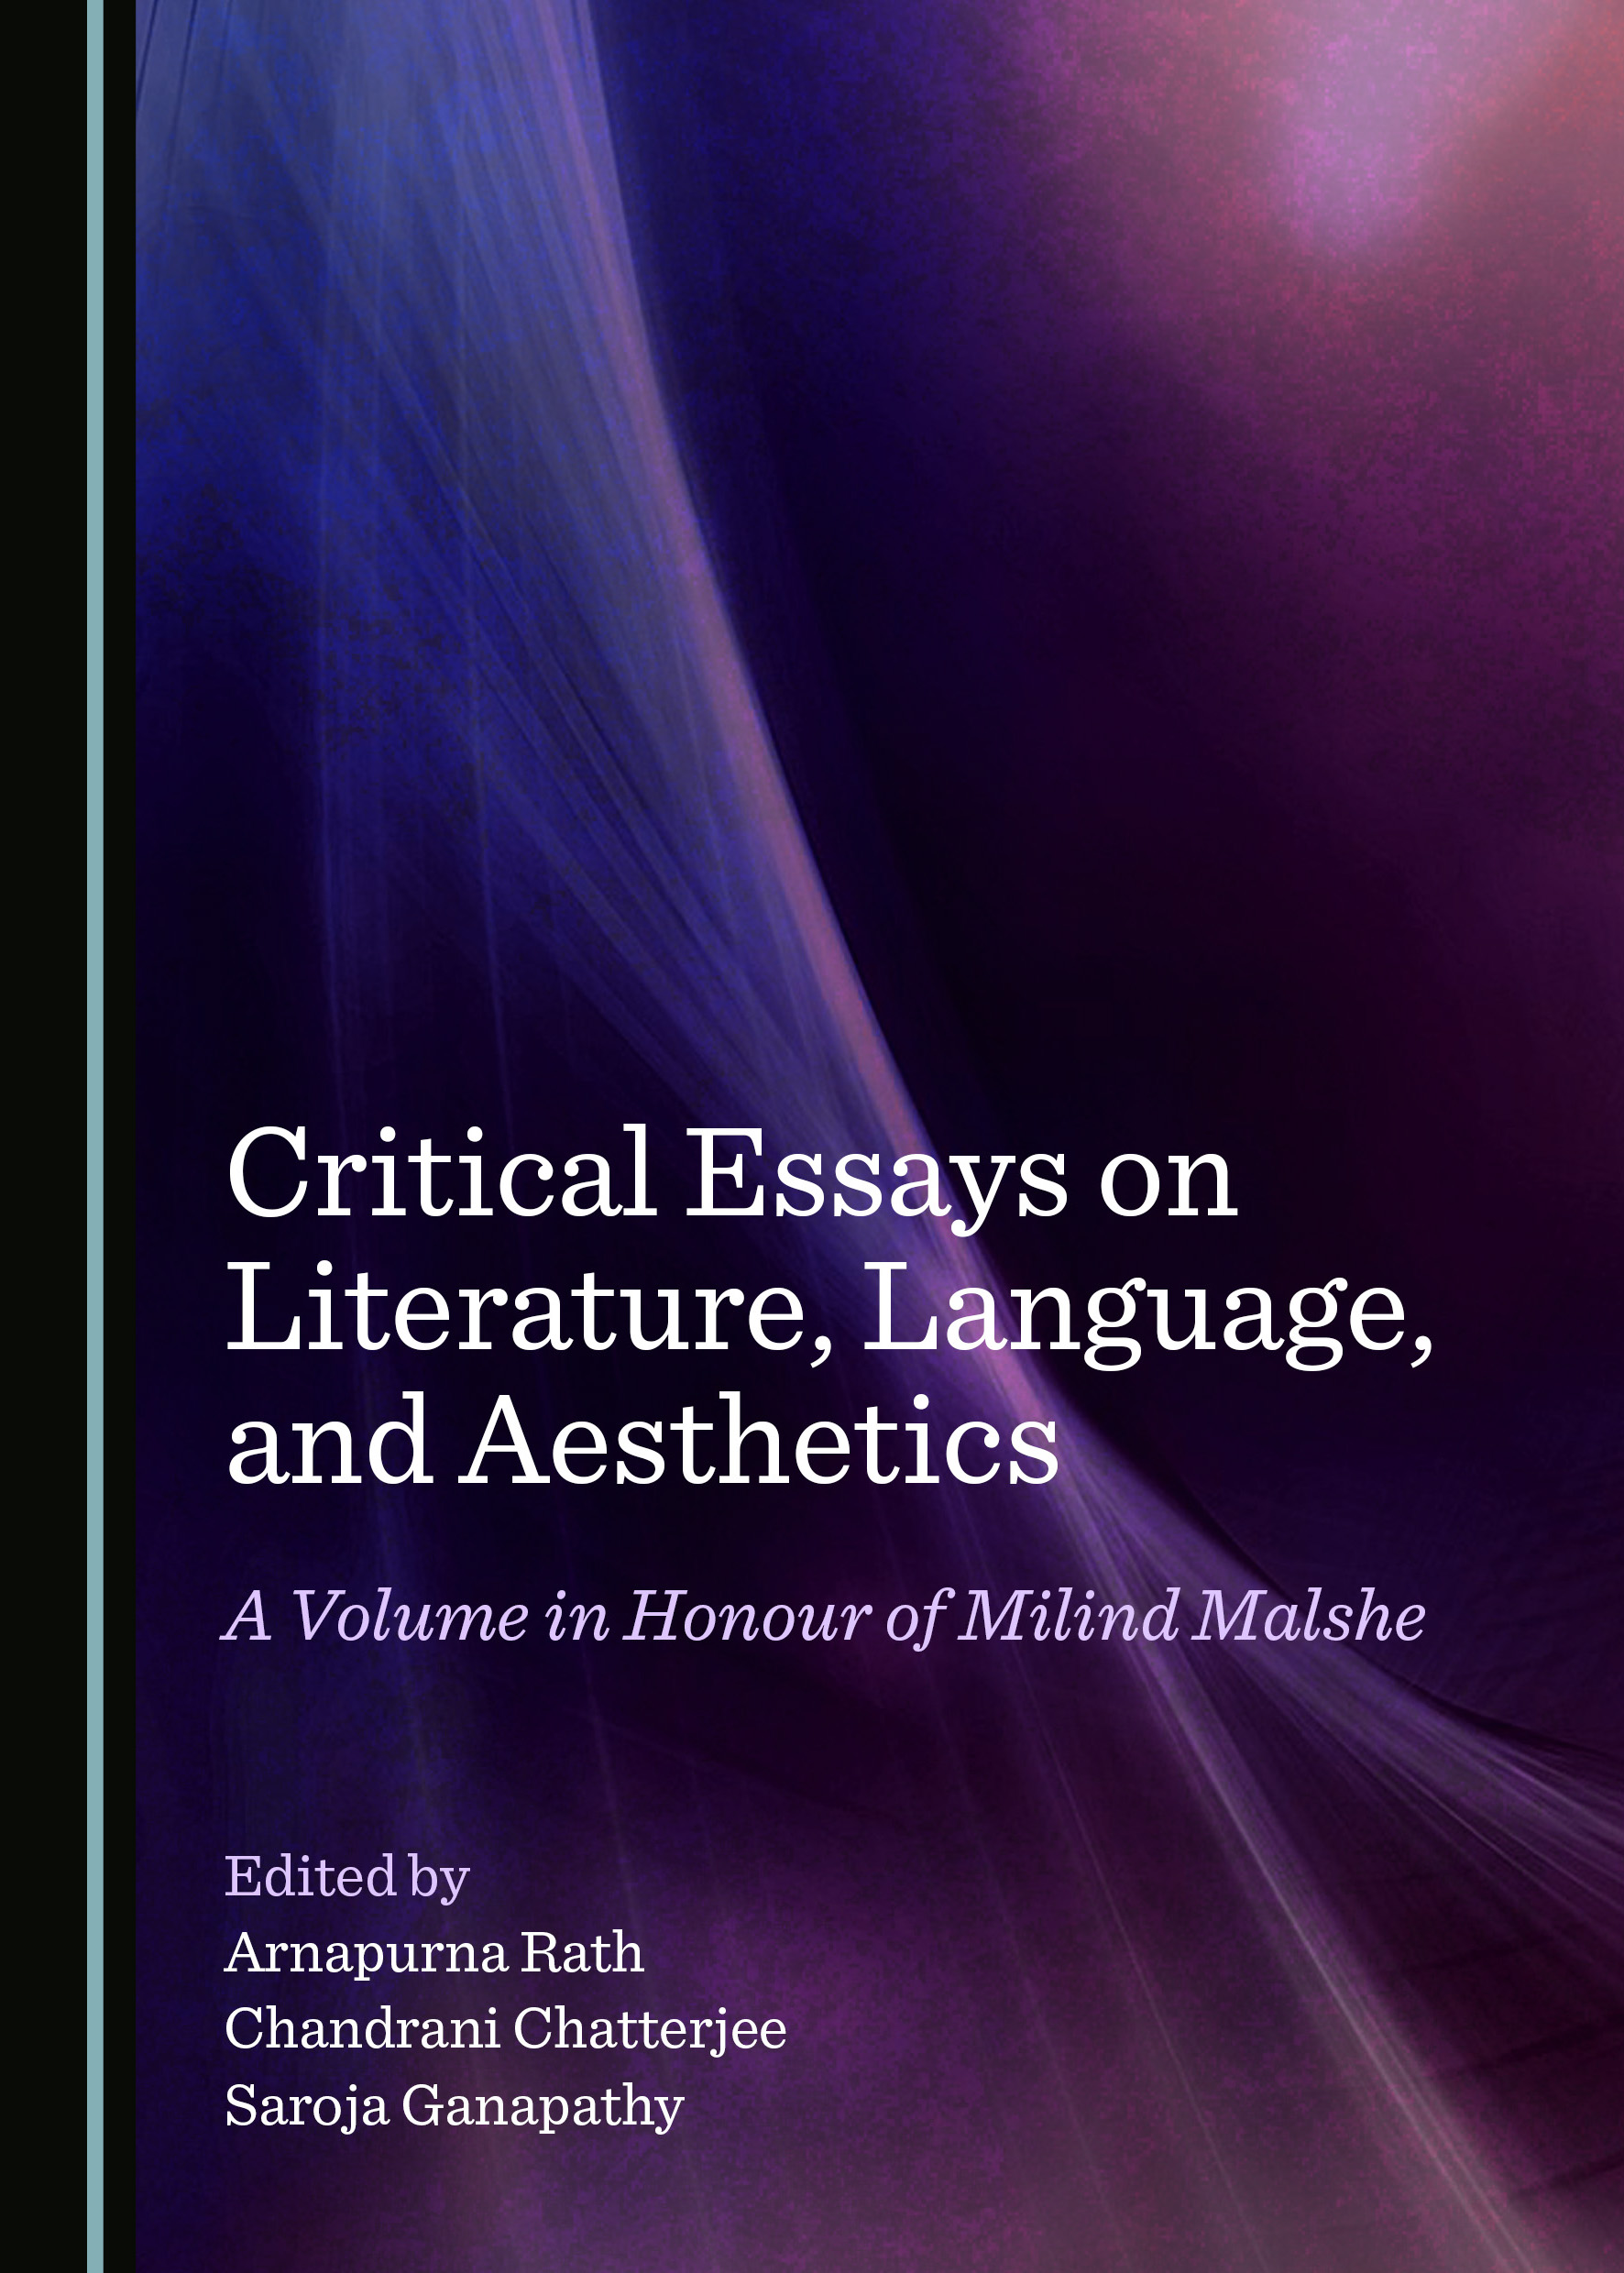 Critical Essays on Literature, Language, and Aesthetics: A Volume in Honour of Milind Malshe